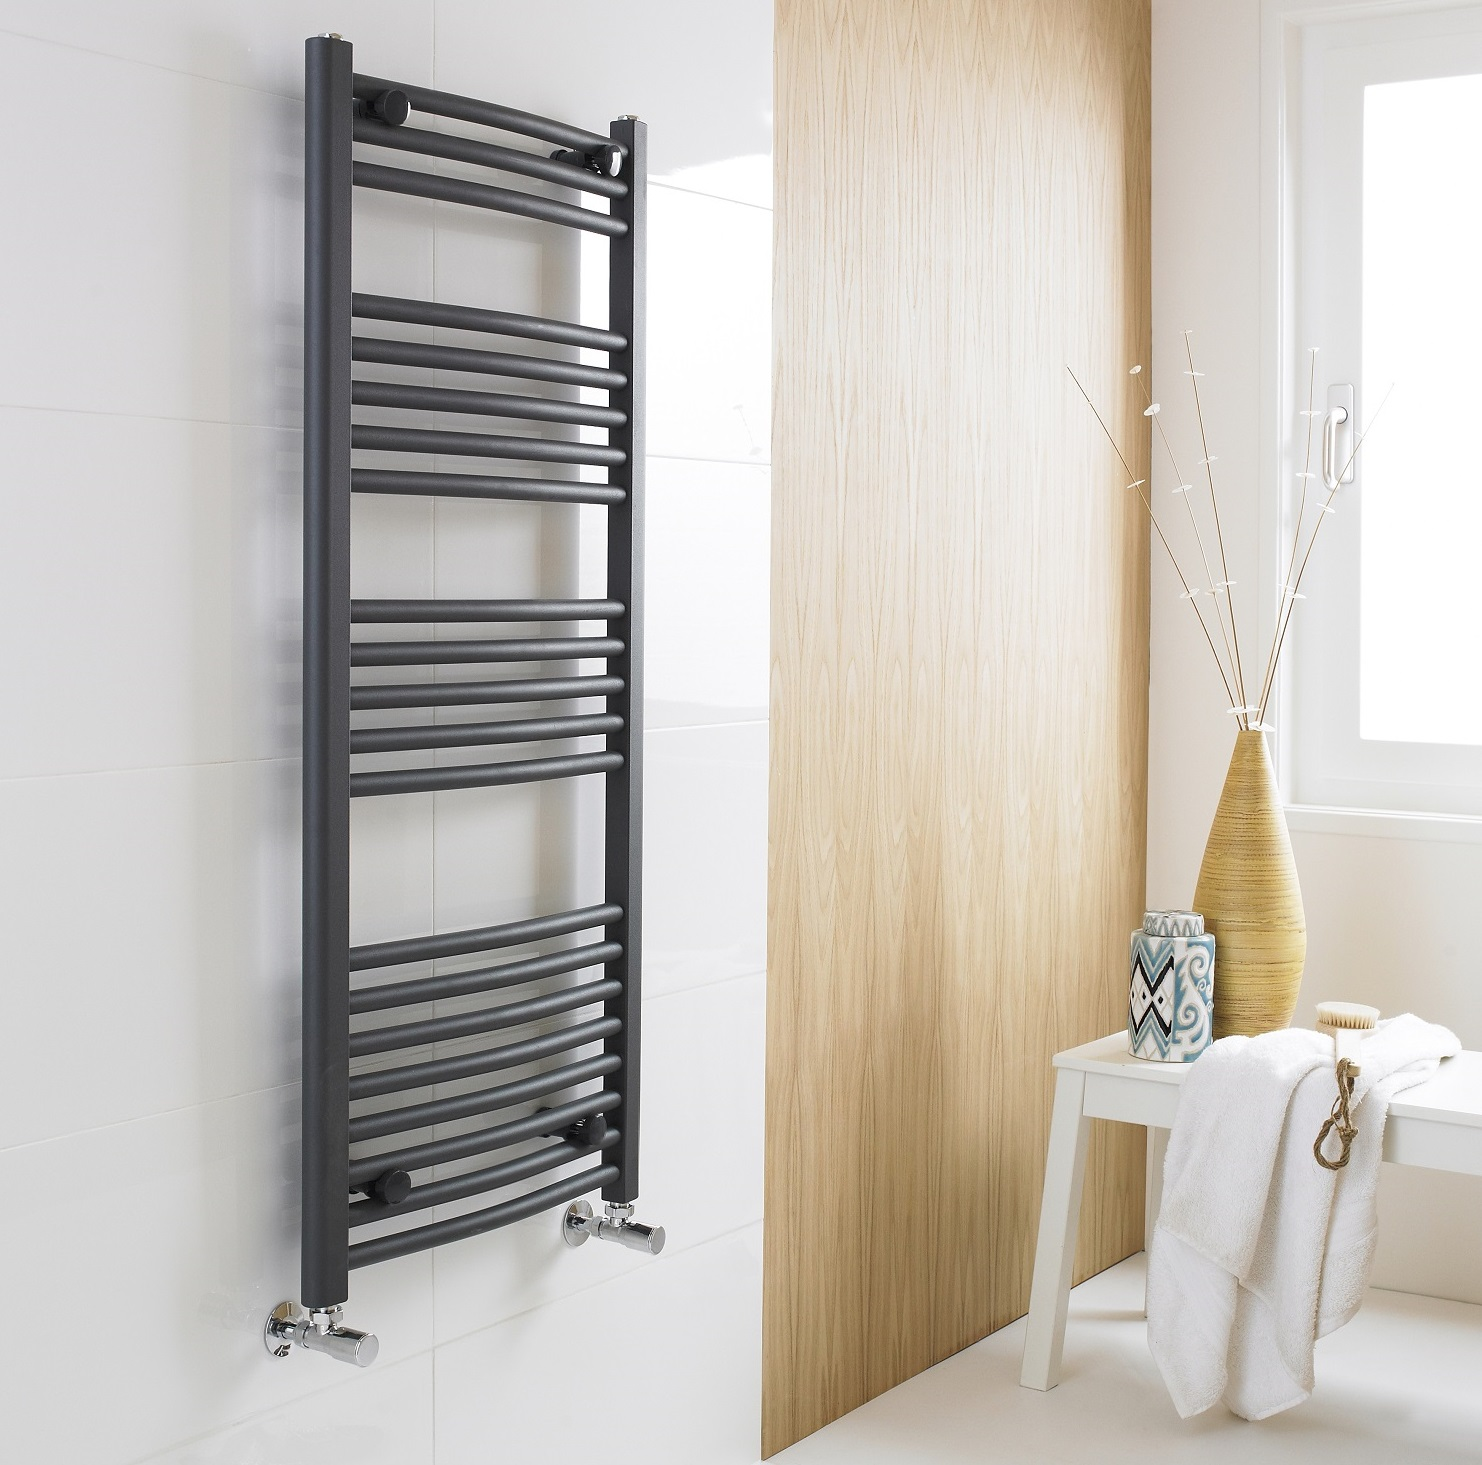 Alpine Modern Heated Towel Rail Warmer Chrome: Bathroom Towel Rails - How To Choose The Best One